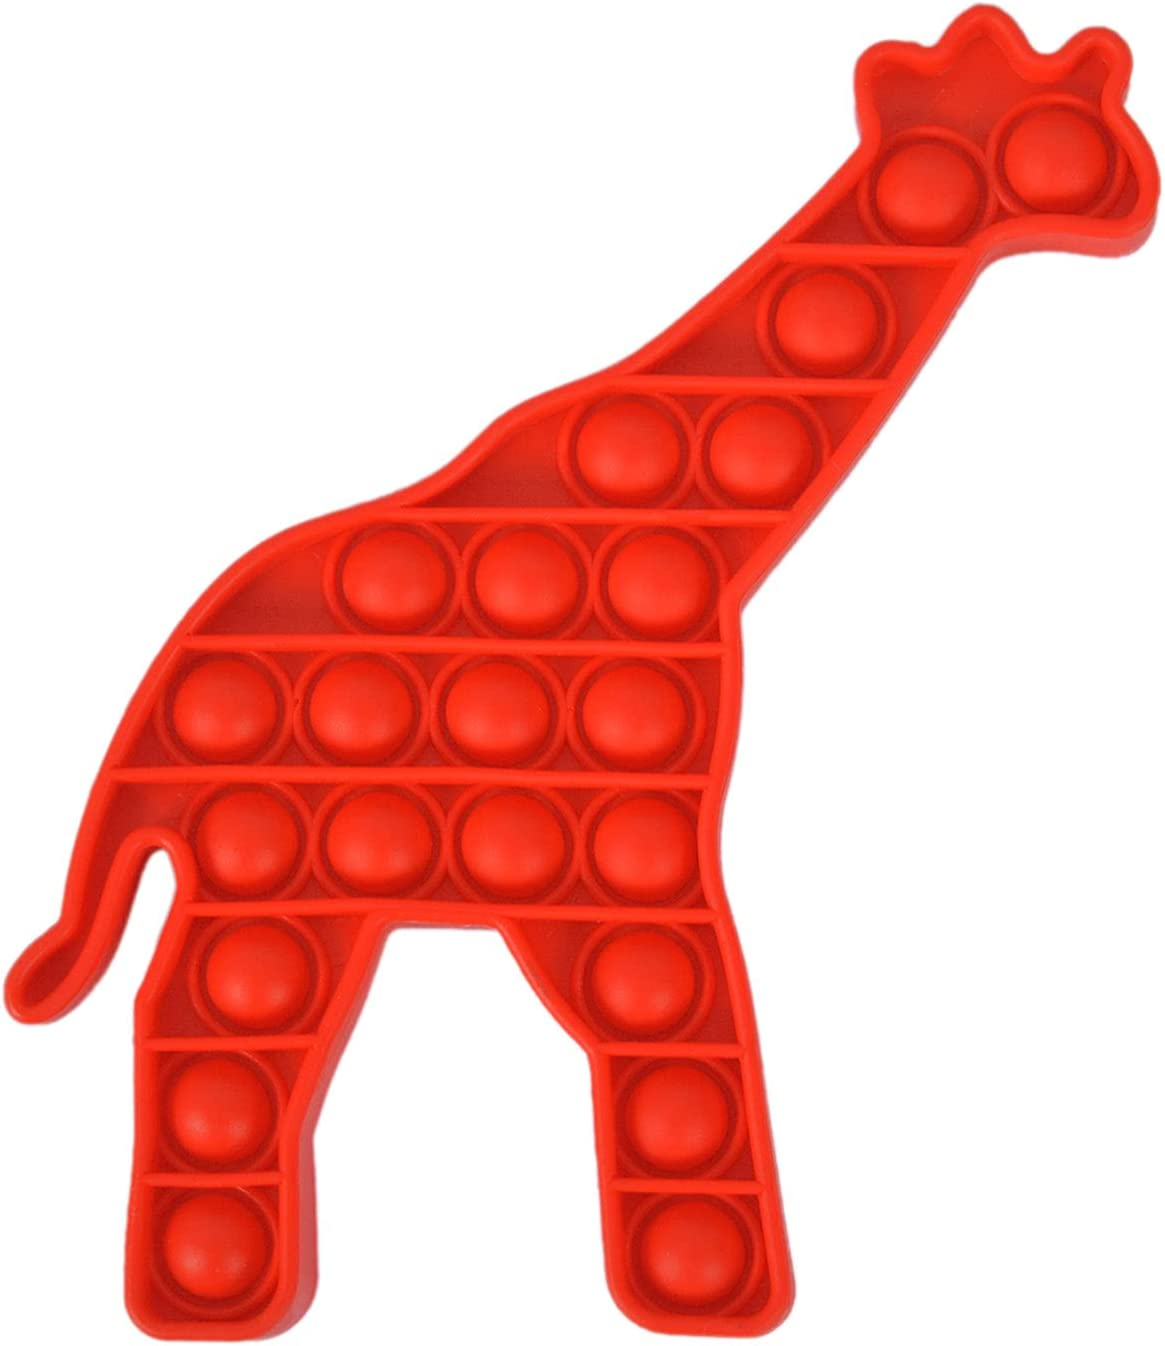 Stress Relief Silicone Toy Stress Anxiety Relief Toys for ADHD Autism Special Needs Fidget Popper Stress Reliever Toys Bubble Popper Toy brandl Red Giraffe Push Pop Fidget Toy